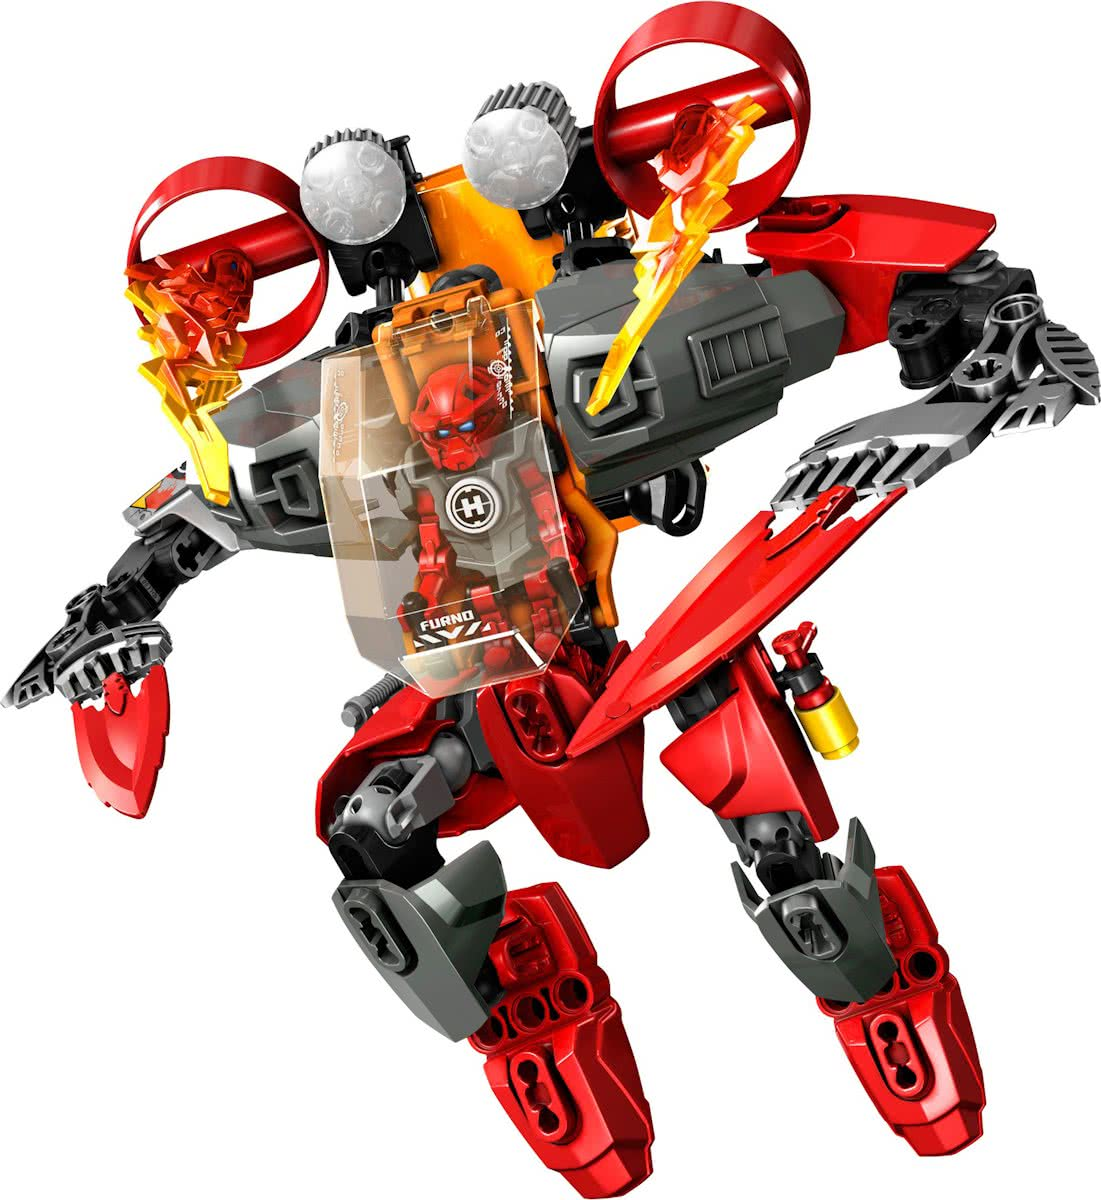 LEGO Hero Factory FURNO Jet Machine - 44018